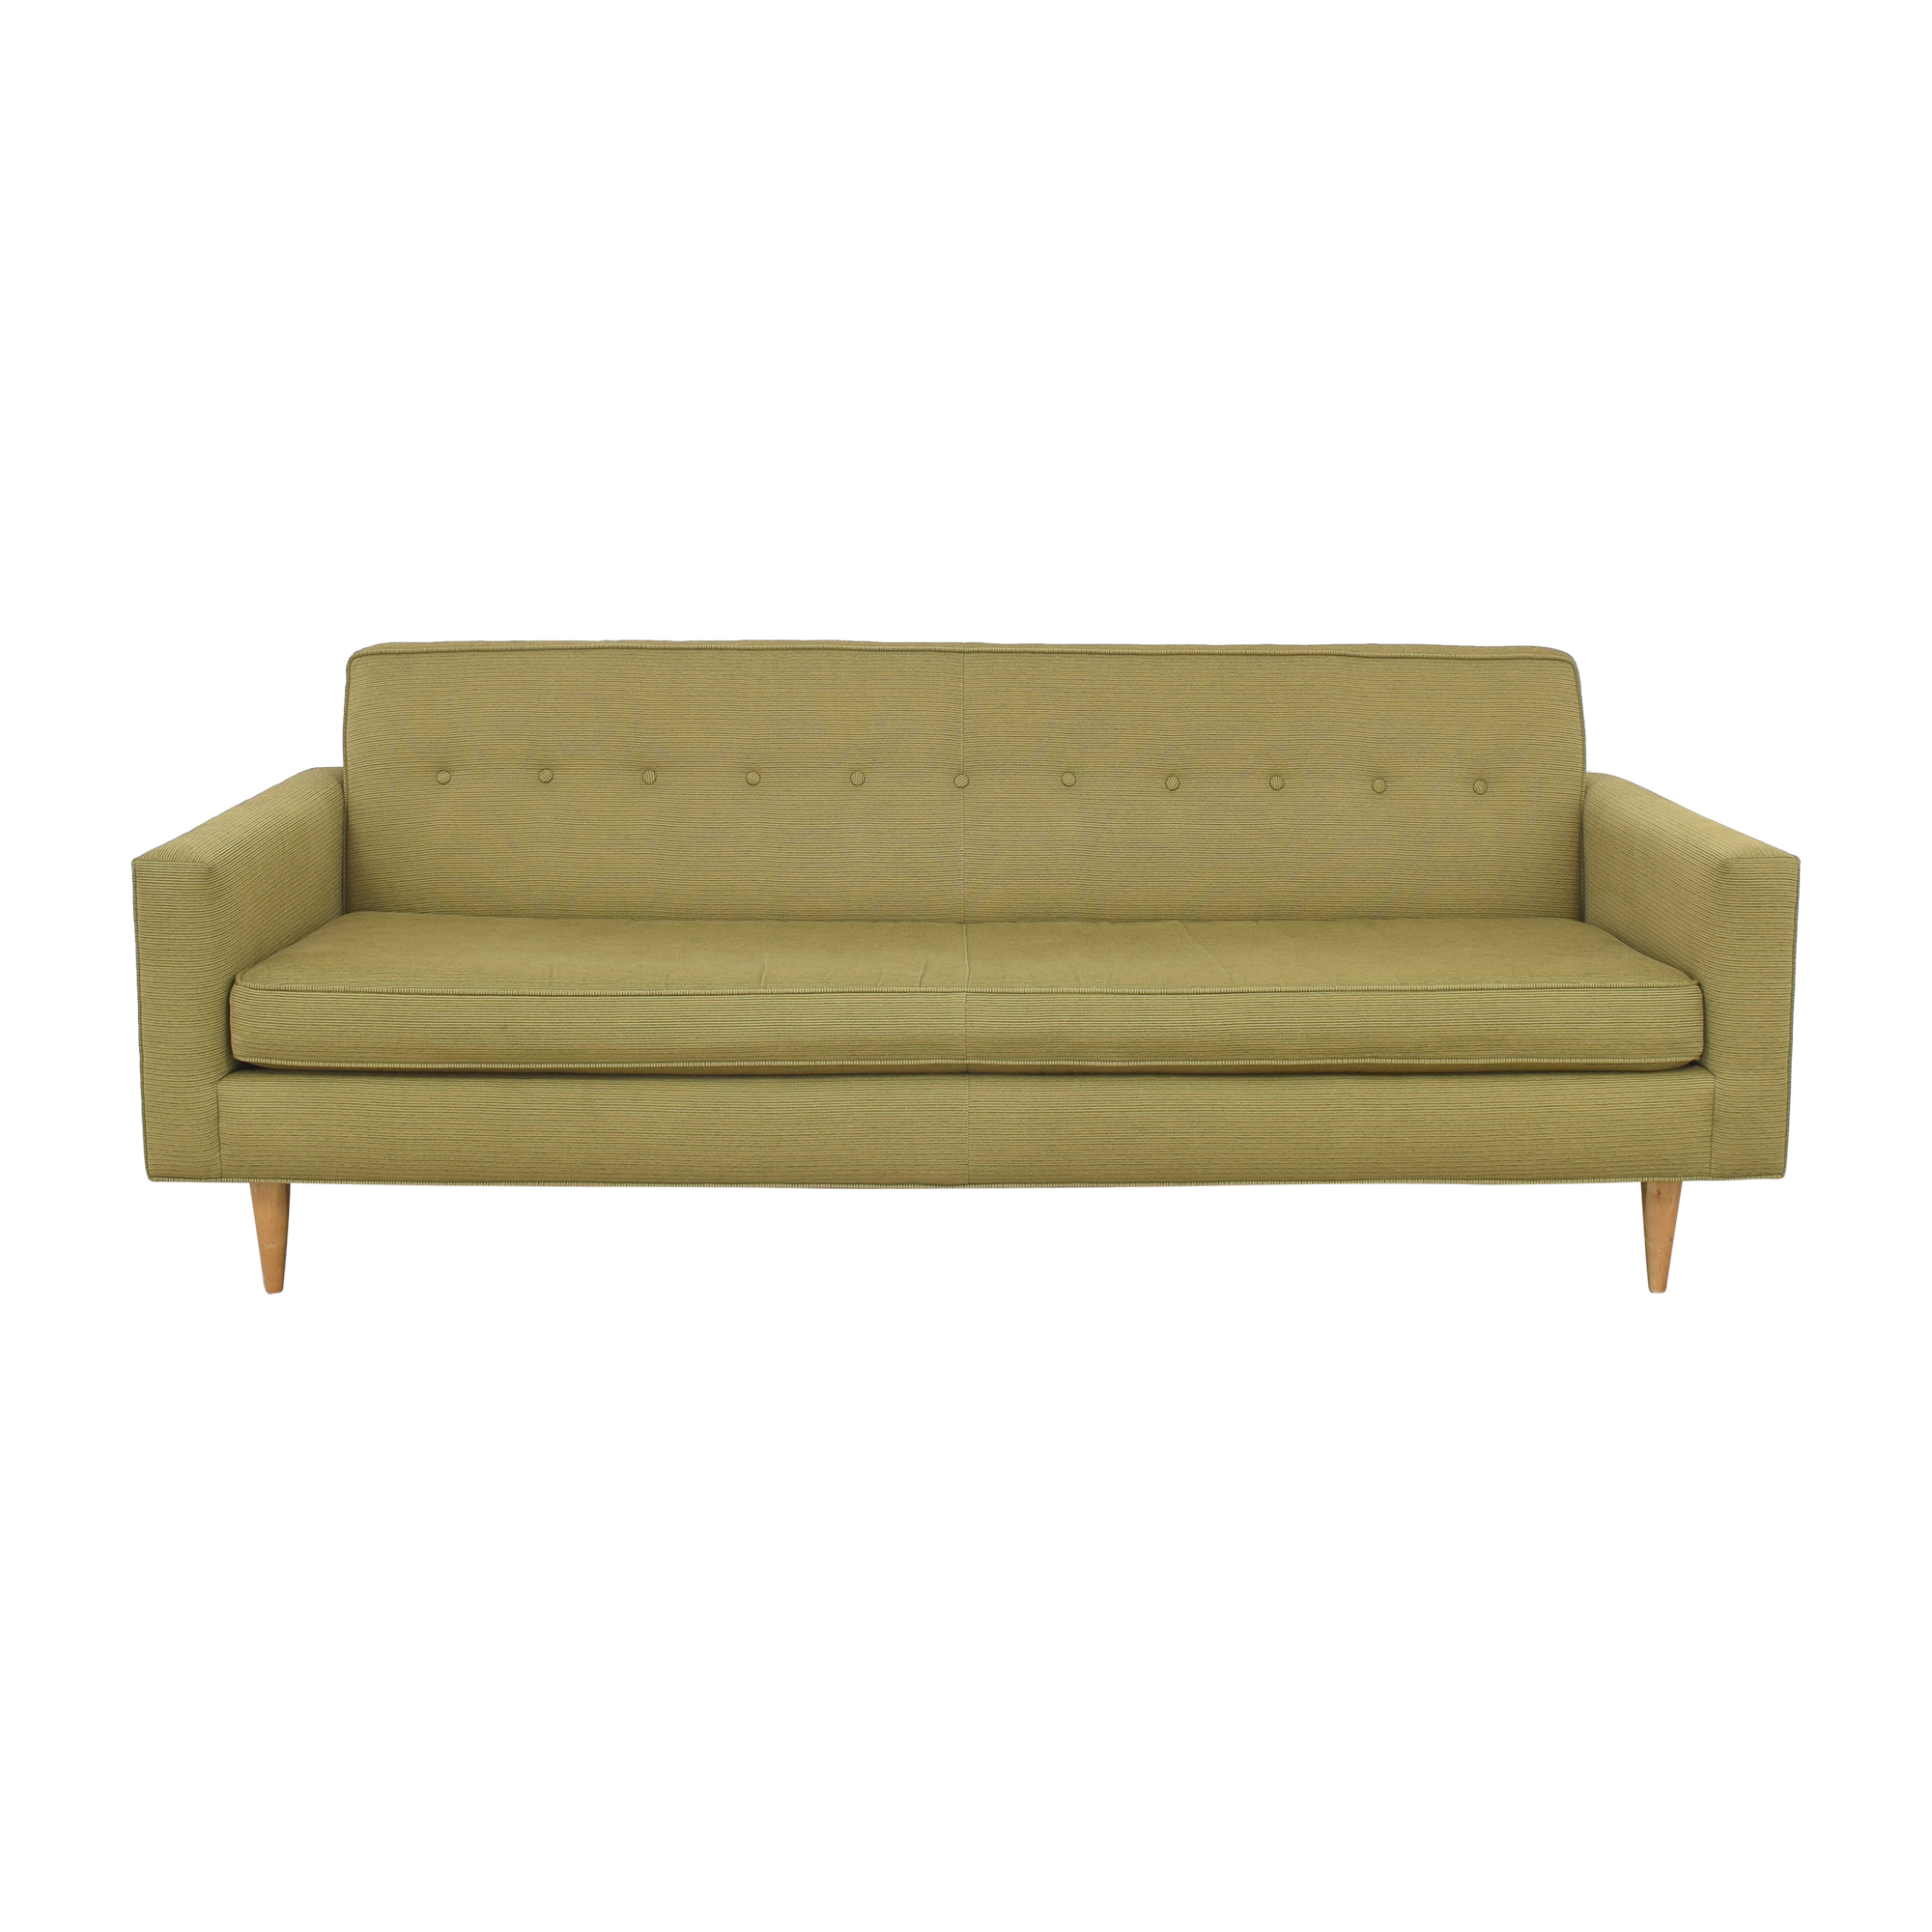 buy Design Within Reach Bantam Mid Century Sofa Design Within Reach Classic Sofas